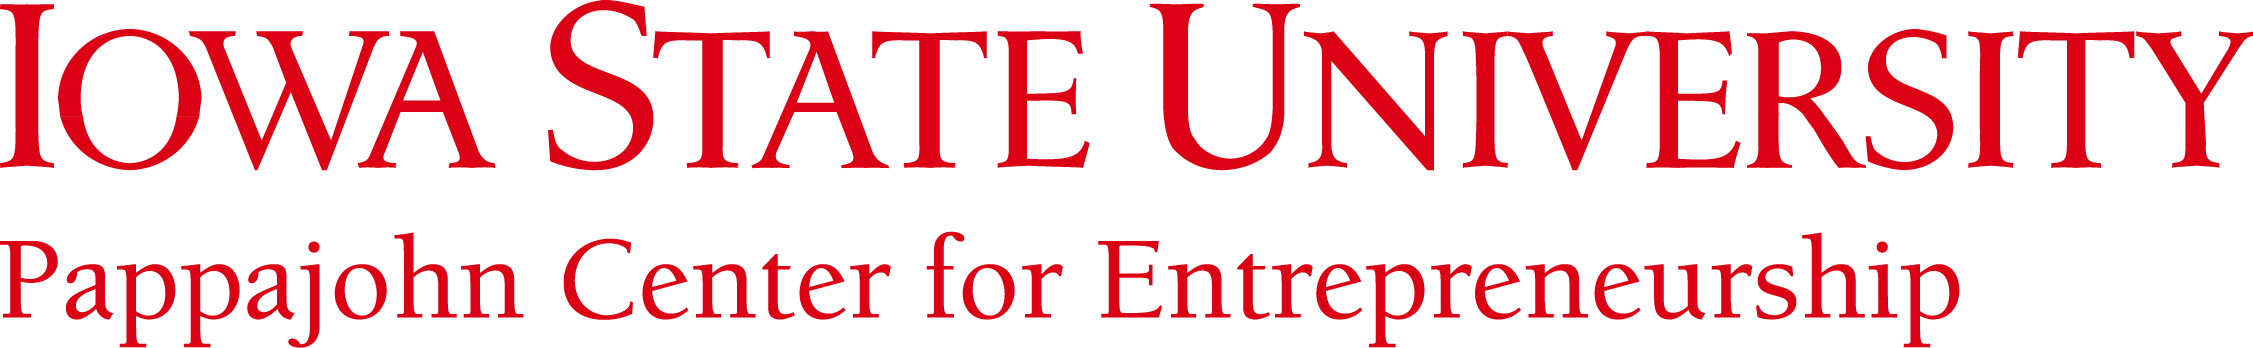 ISU Pappajohn Center for Entrepreneurship